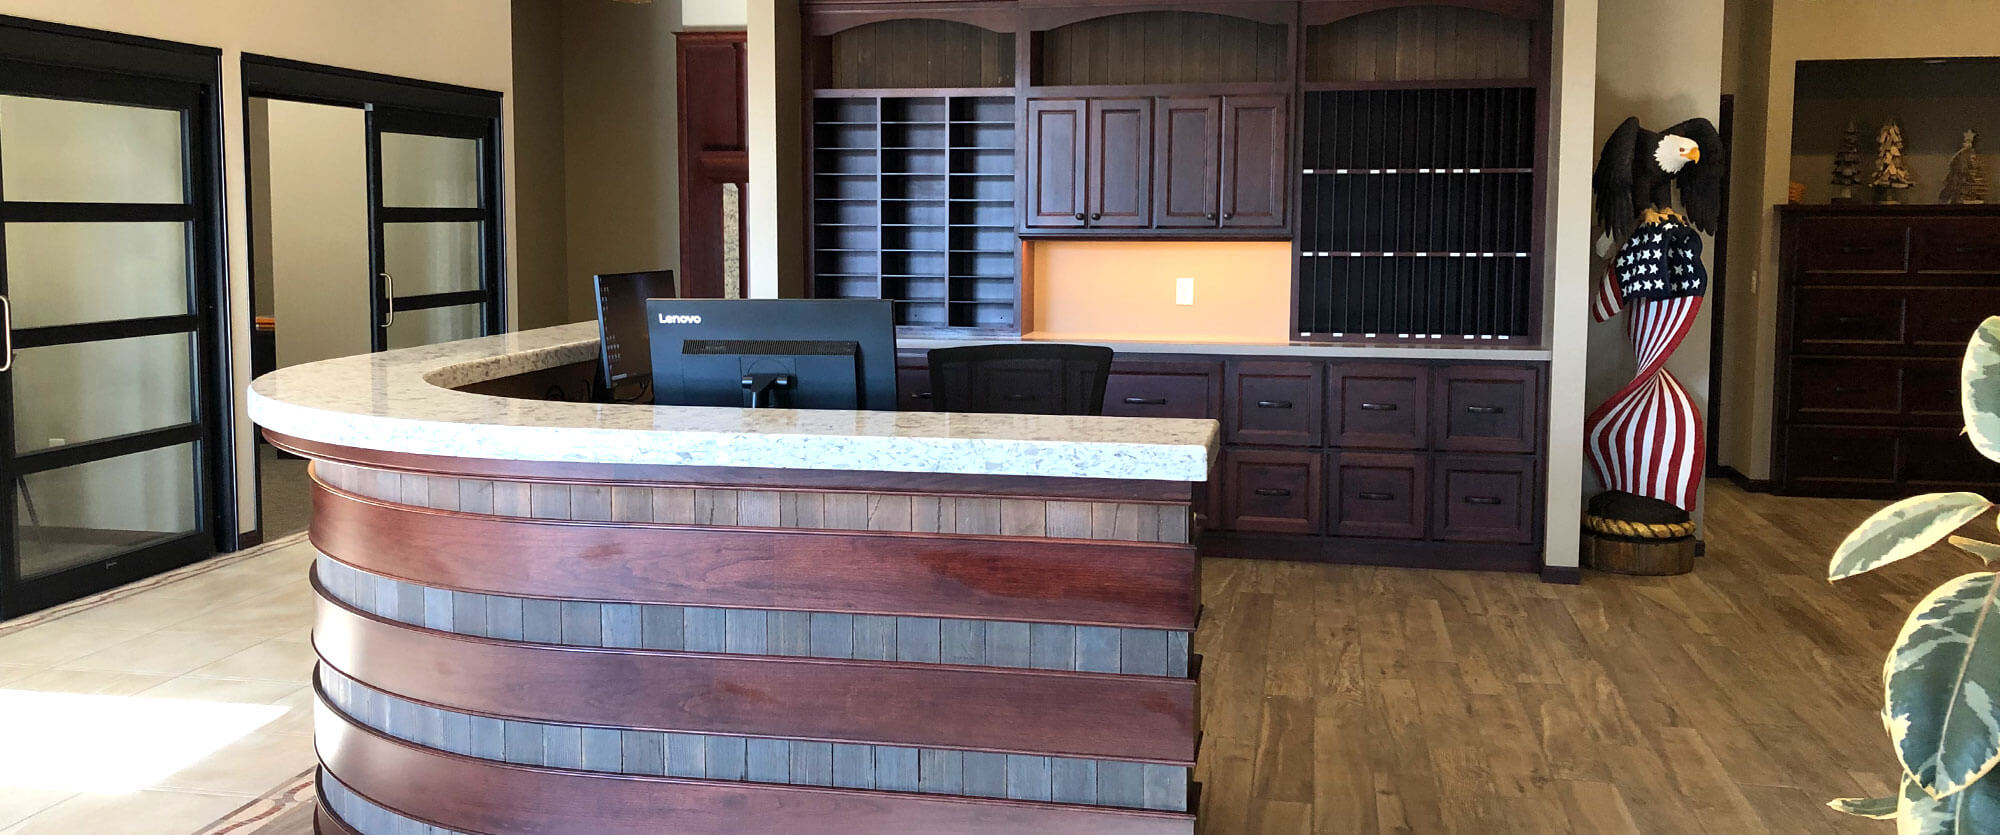 Custom wood receiption desk and storage cabinets designed, built, and installed by finewood Structures of Browerville, MN